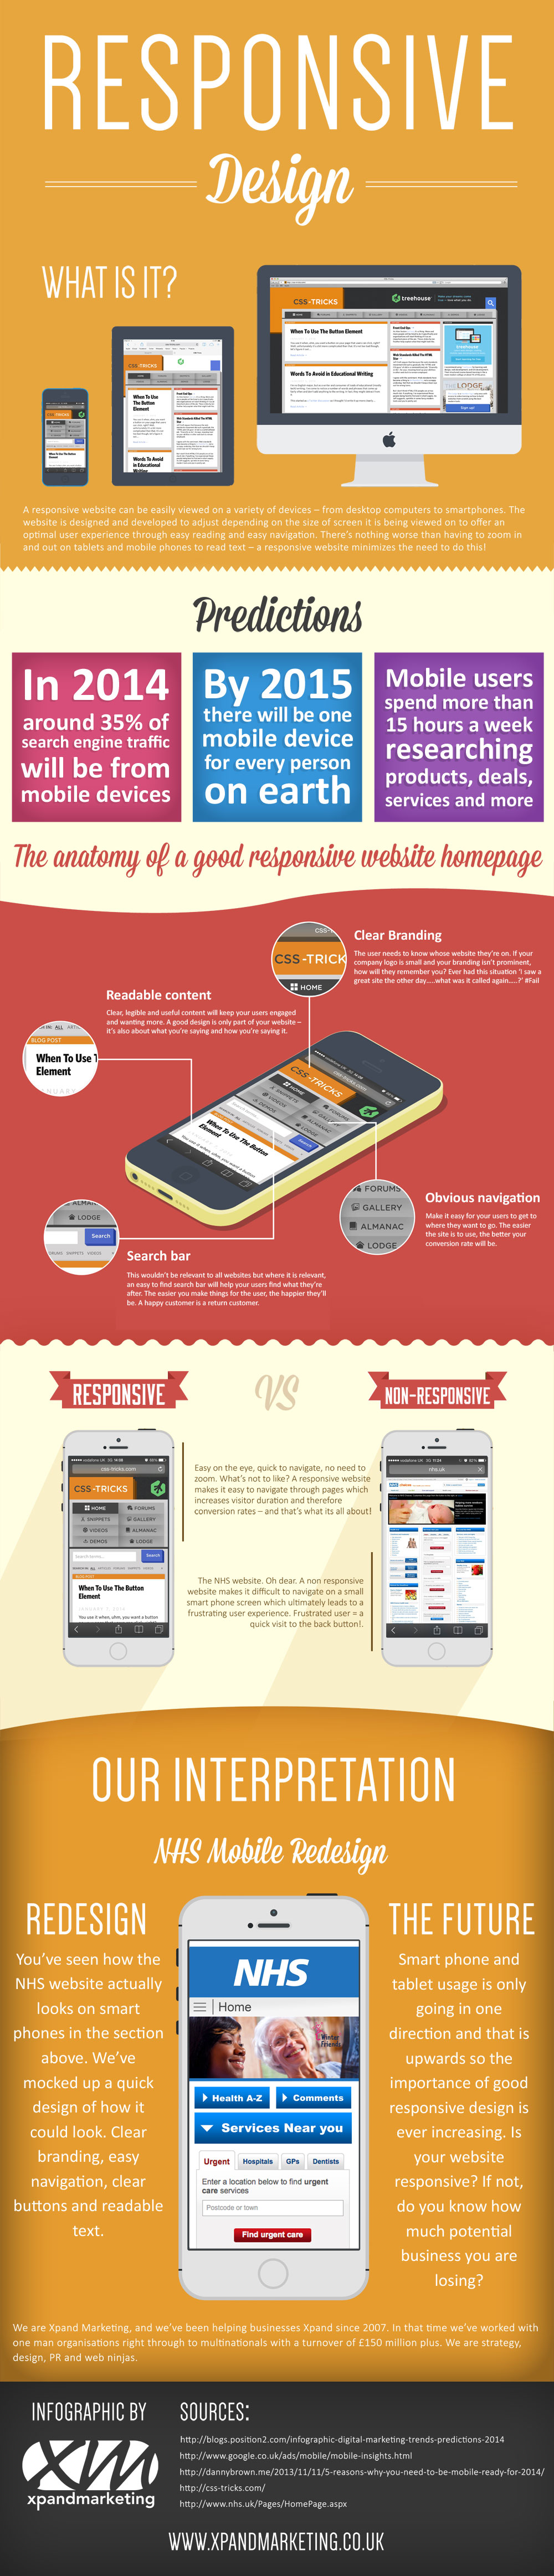 What is responsive design infographic